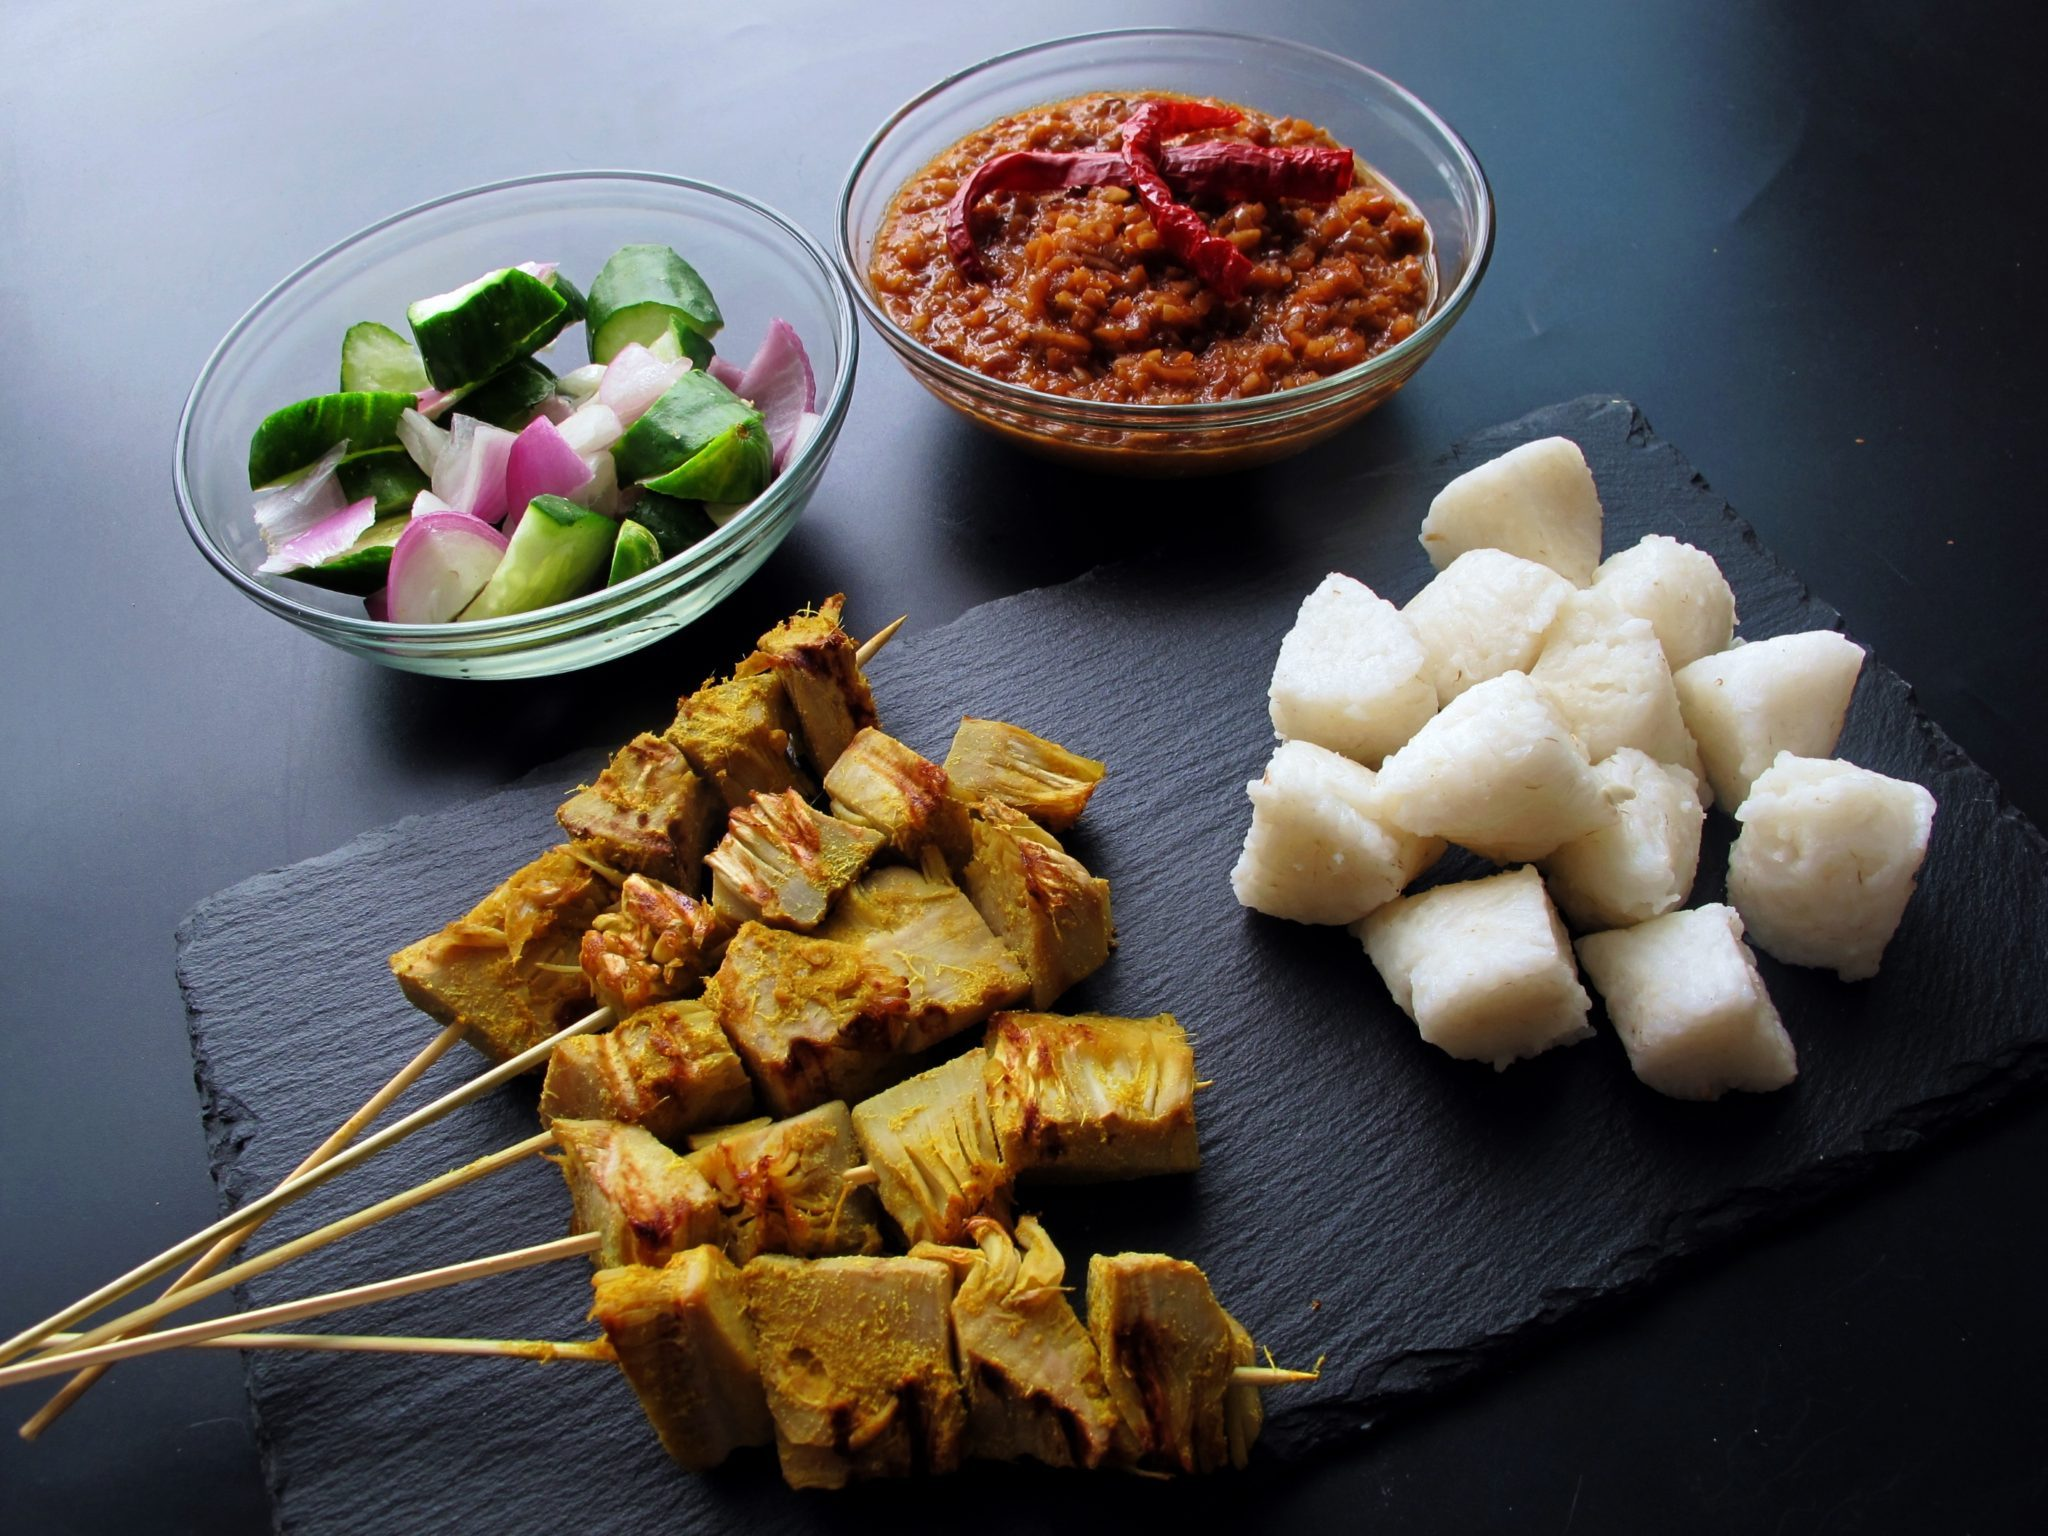 Vegan Jackfruit Satay Skewers Are Here to Spice Up Your Life